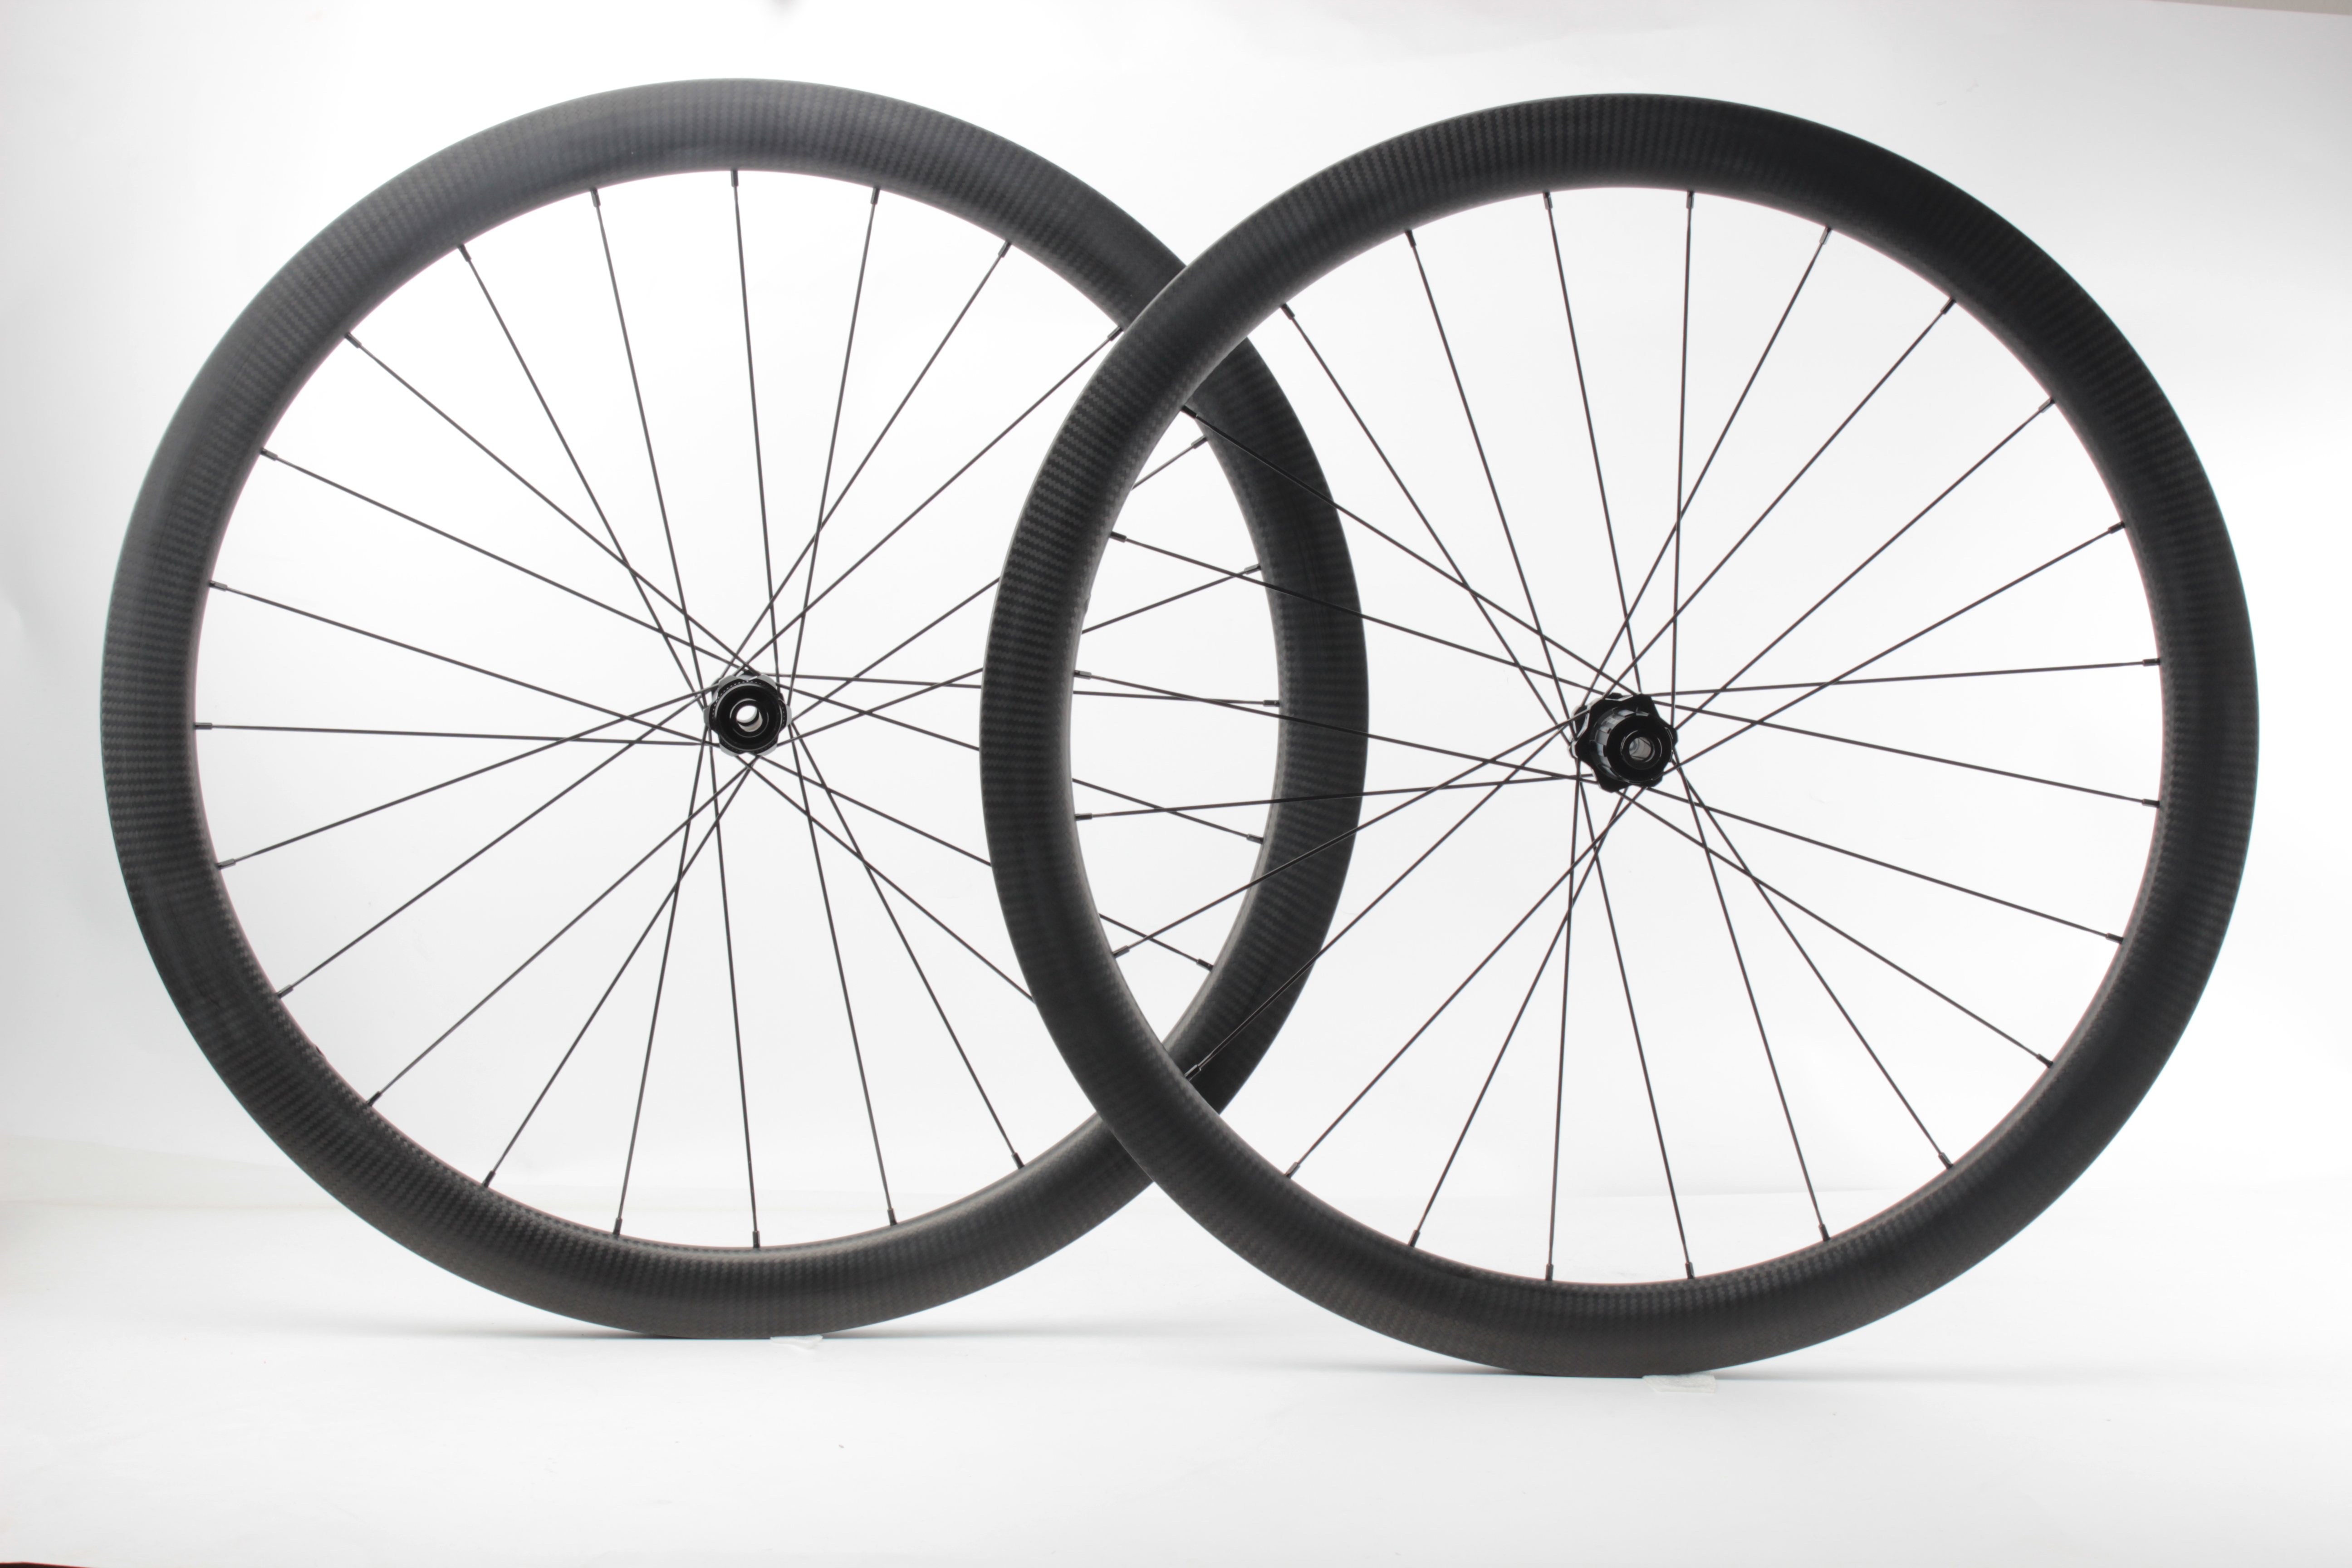 Cheap Chinese Carbon tubeless bicycle wheels disc brake dt swiss disc hub for road